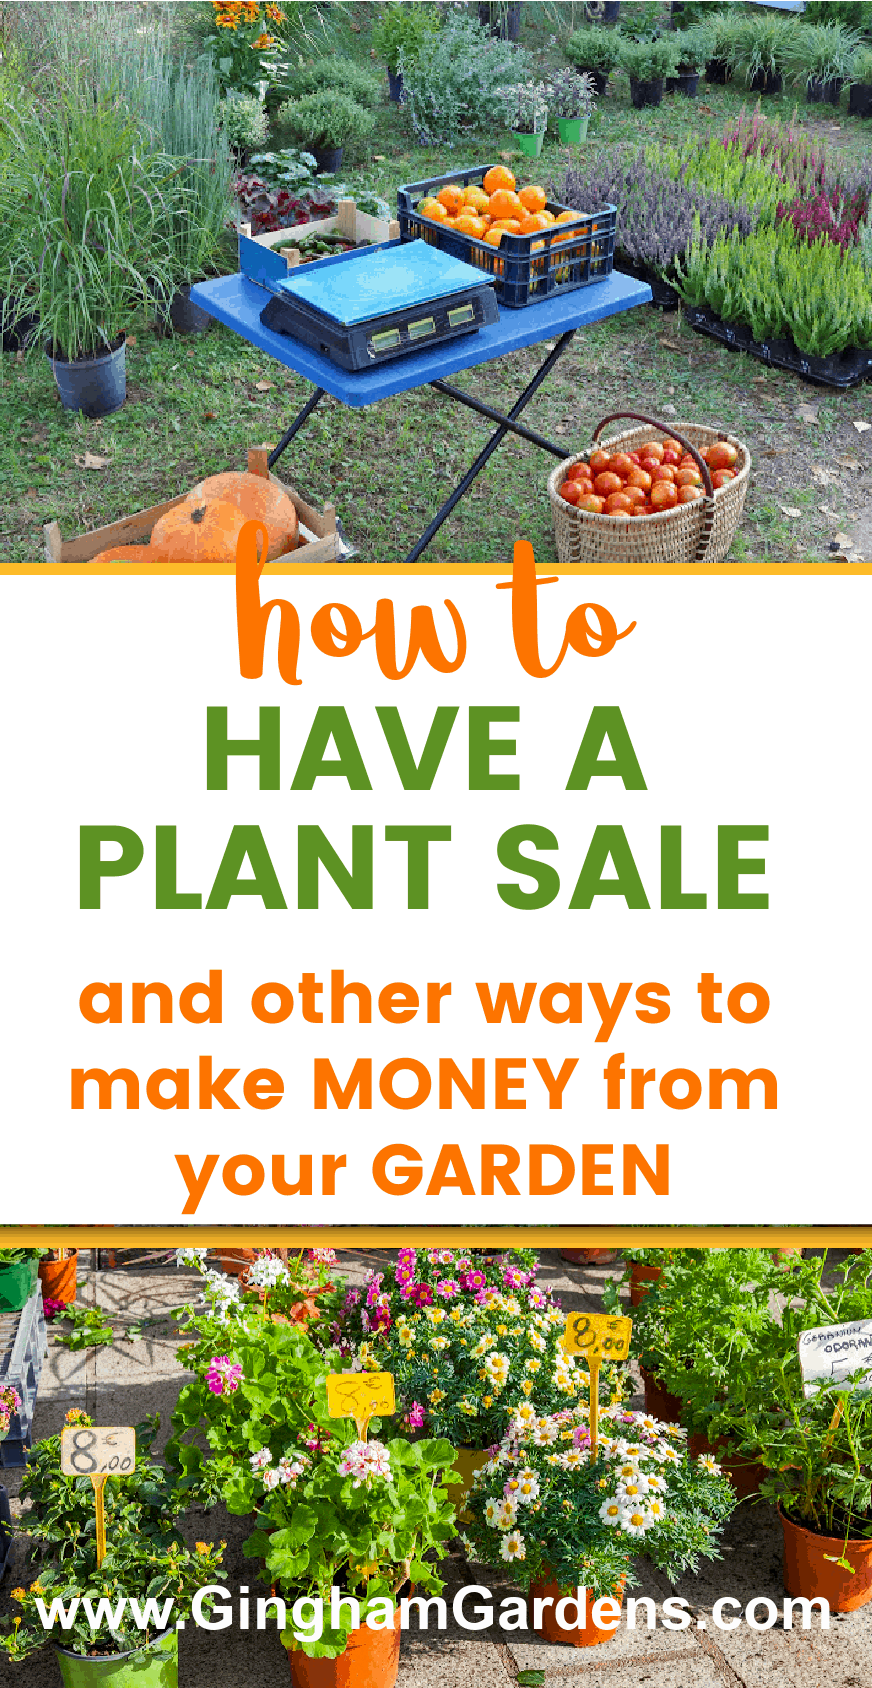 Images of Plant Sales with Text Overlay - How to Have a Plant Sale